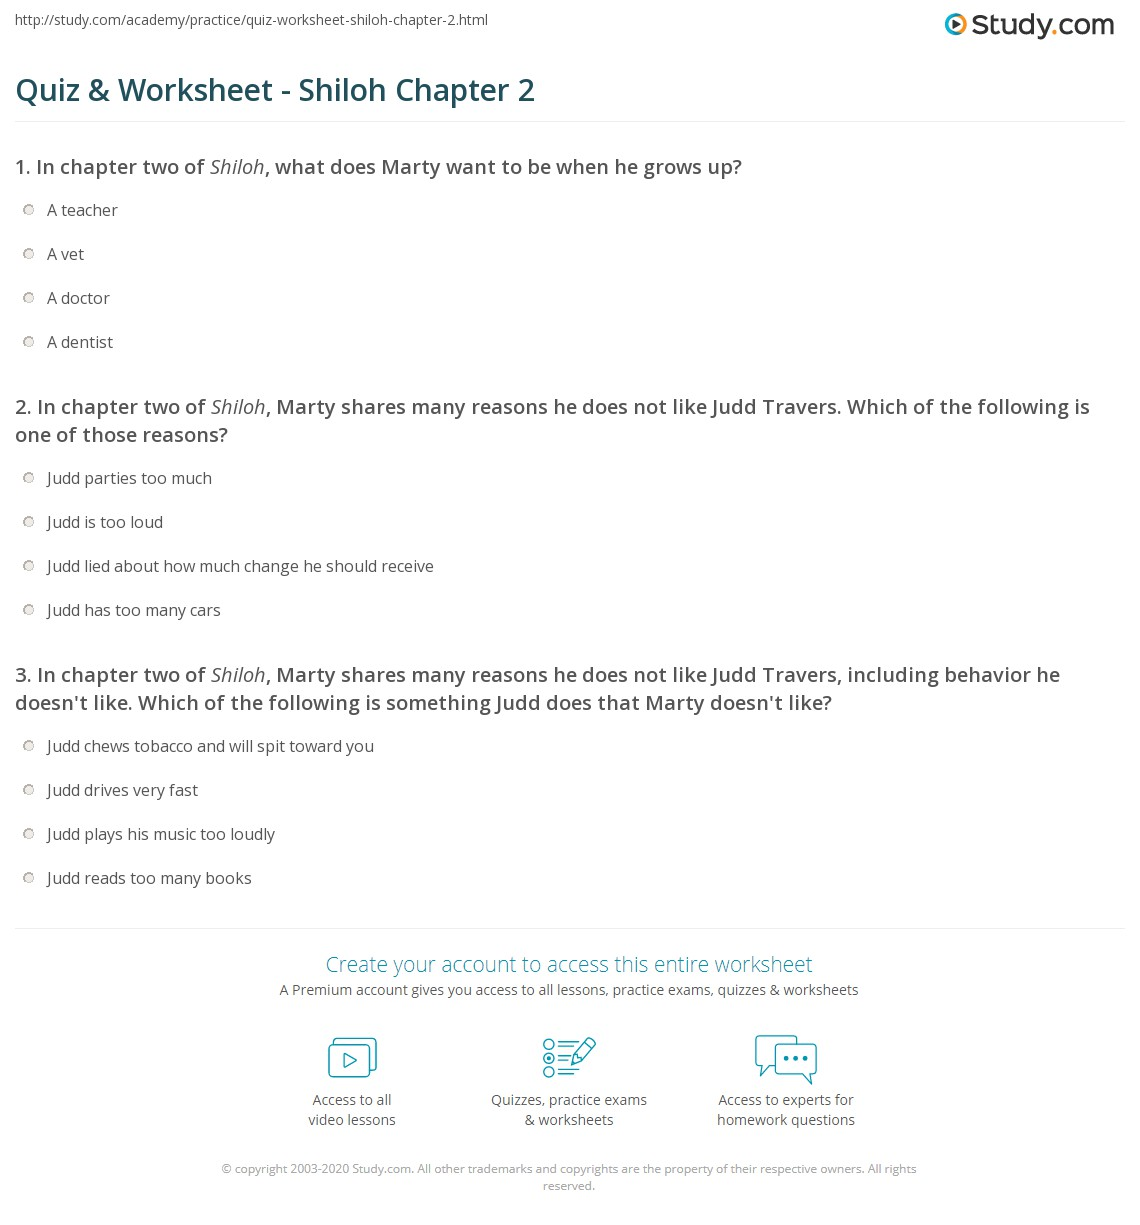 chapter two quiz Study chapter 2 quiz flashcards from jenelle conner's class online, or in  brainscape's iphone or android app ✓ learn faster with spaced repetition.